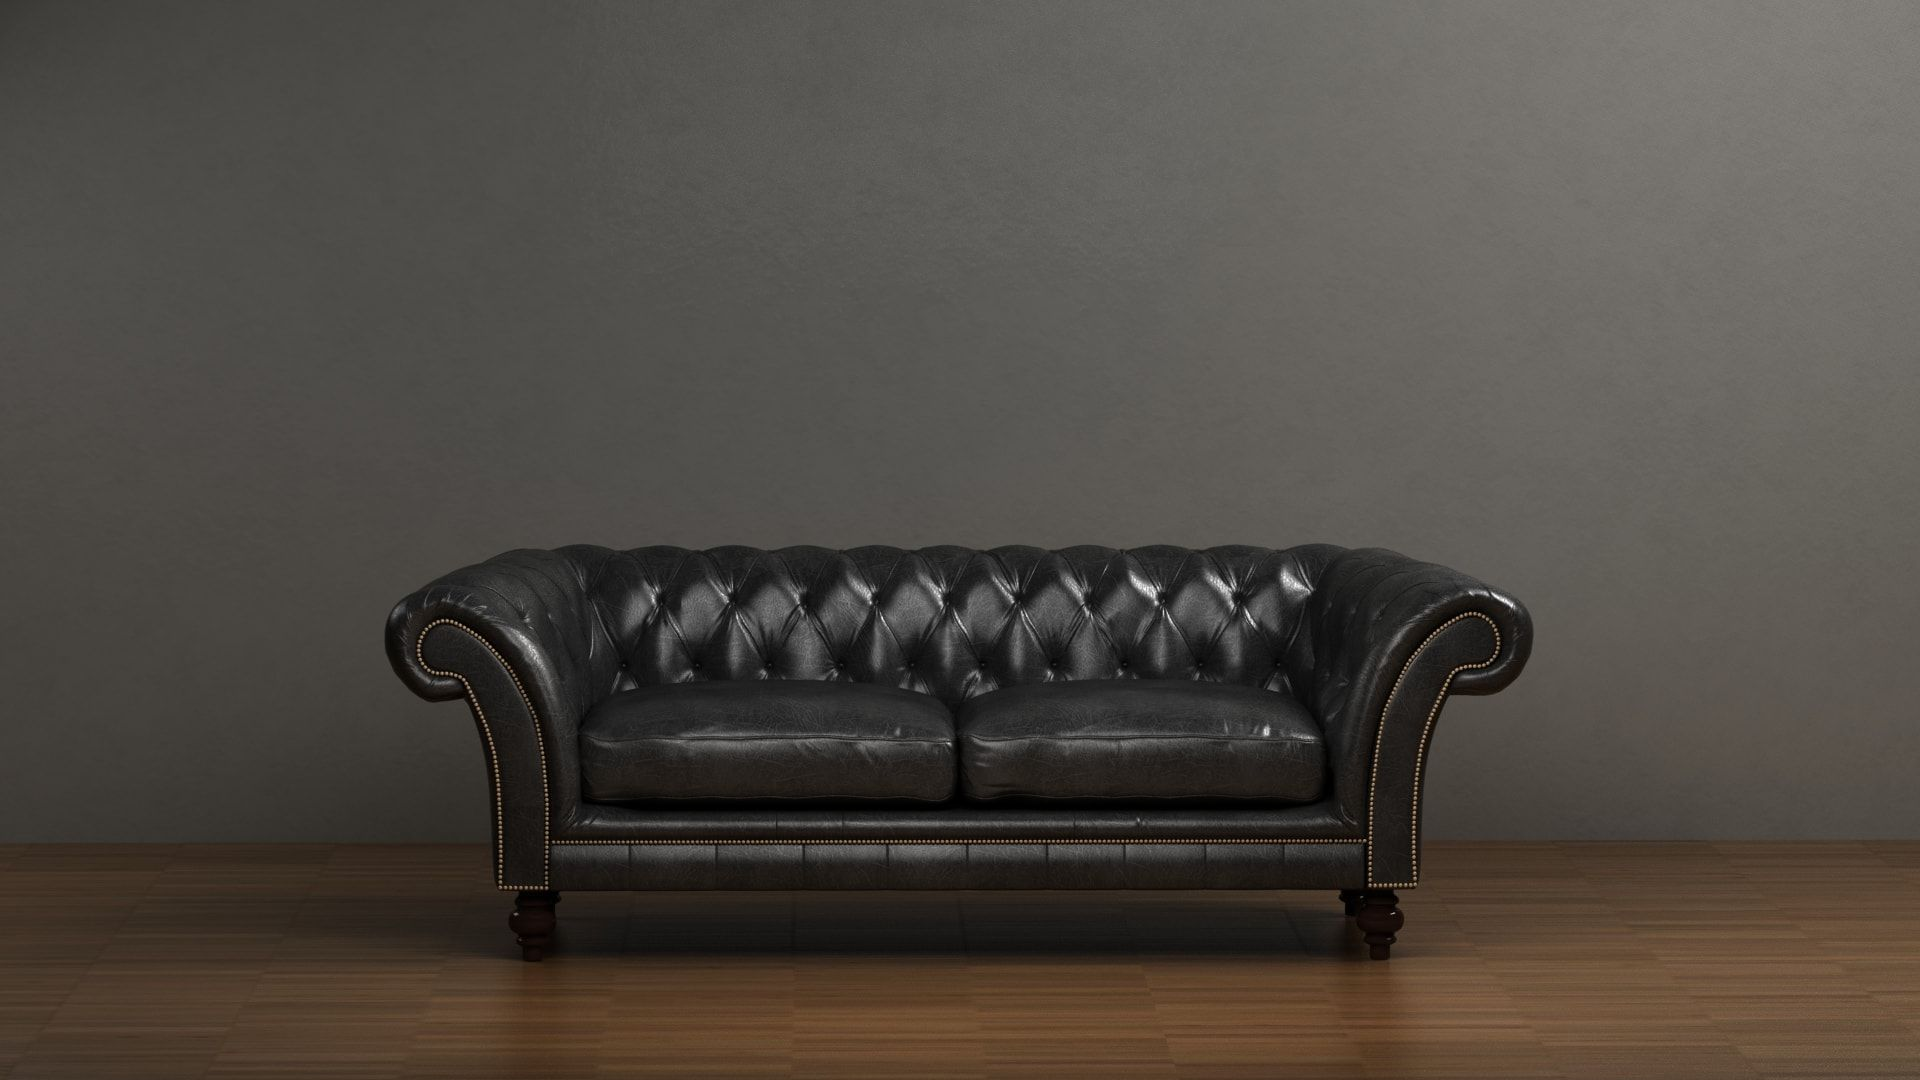 English Chesterfield Leather Sofa - Made in USA | Leather ...